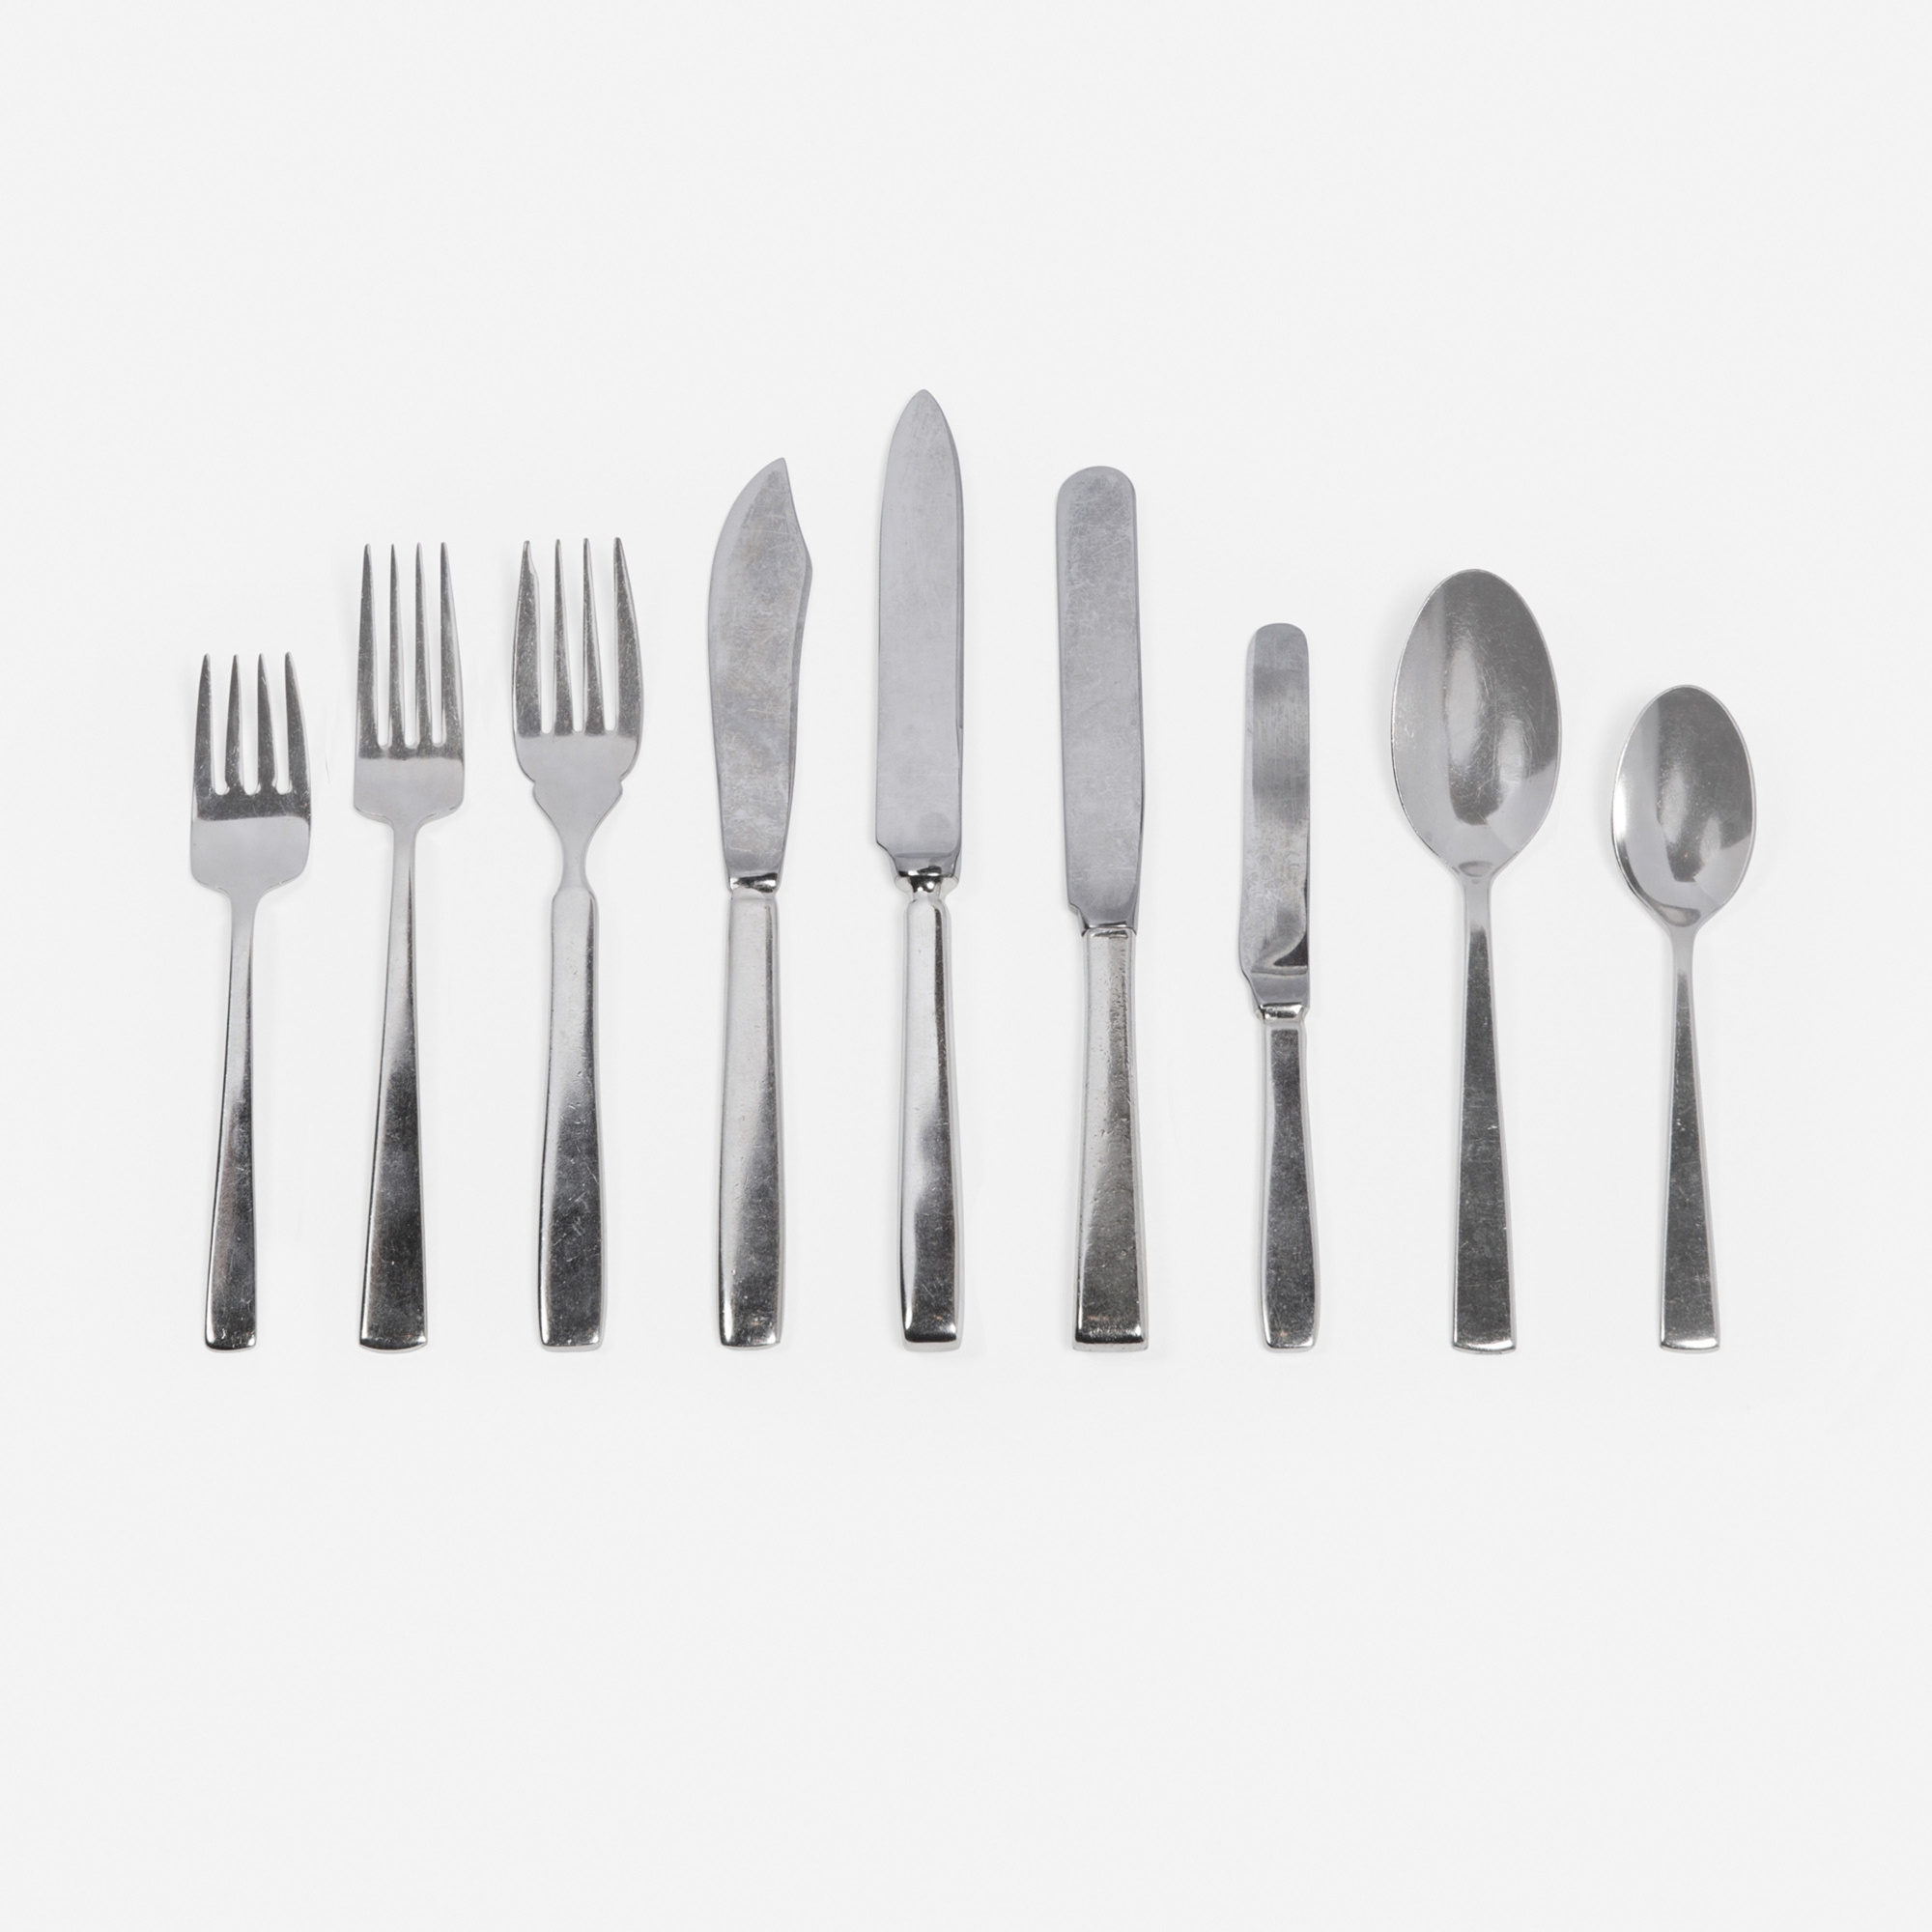 629: Garth and Ada Louise Huxtable / Four Seasons Luncheon flatware from the Pool Room, service for twelve (1 of 1)